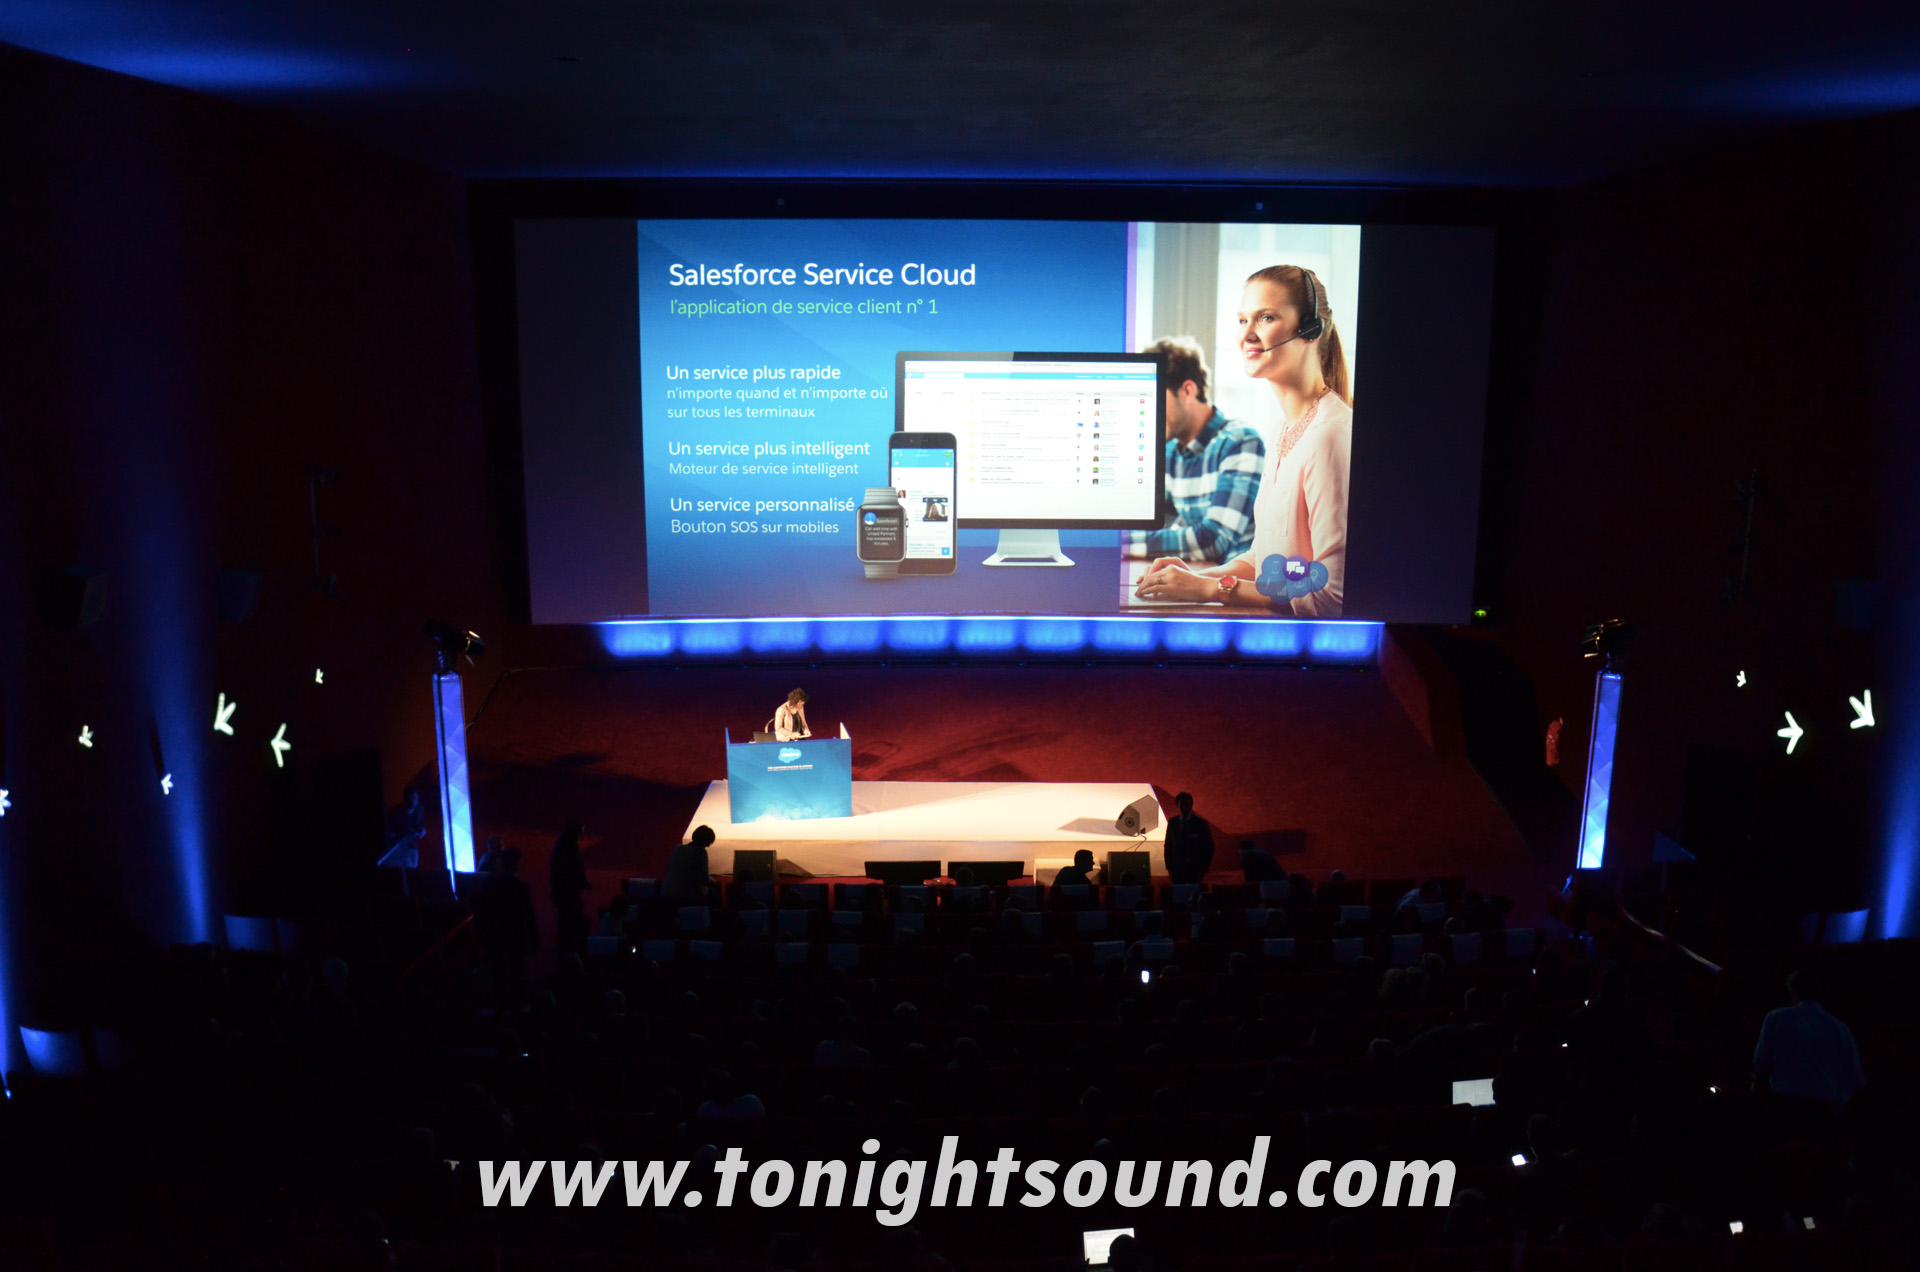 TONIGHTSOUND_SLIDE_4-salesforce-lyon